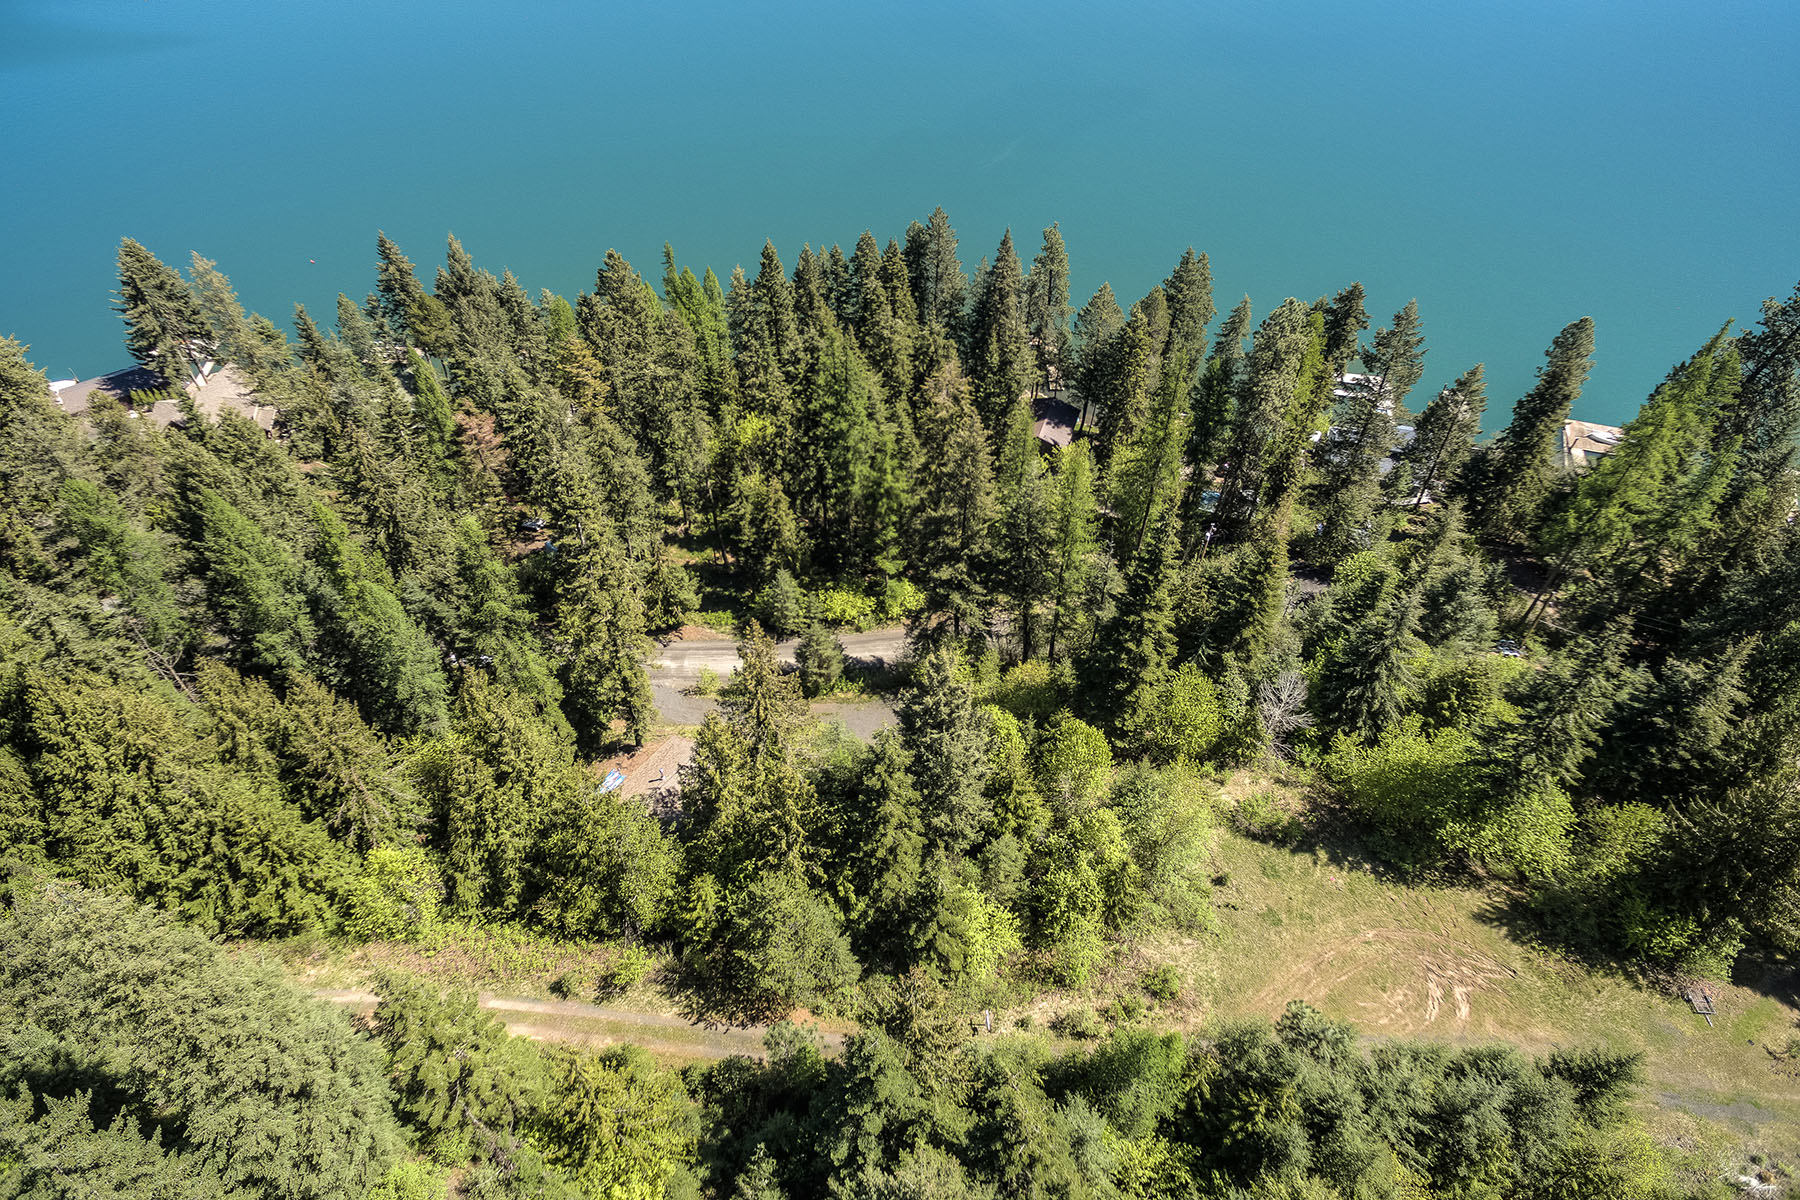 Land for Sale at Secondary Waterfront Lot with Boat Slip NNA S Watson Rd Coeur D Alene, Idaho, 83814 United States